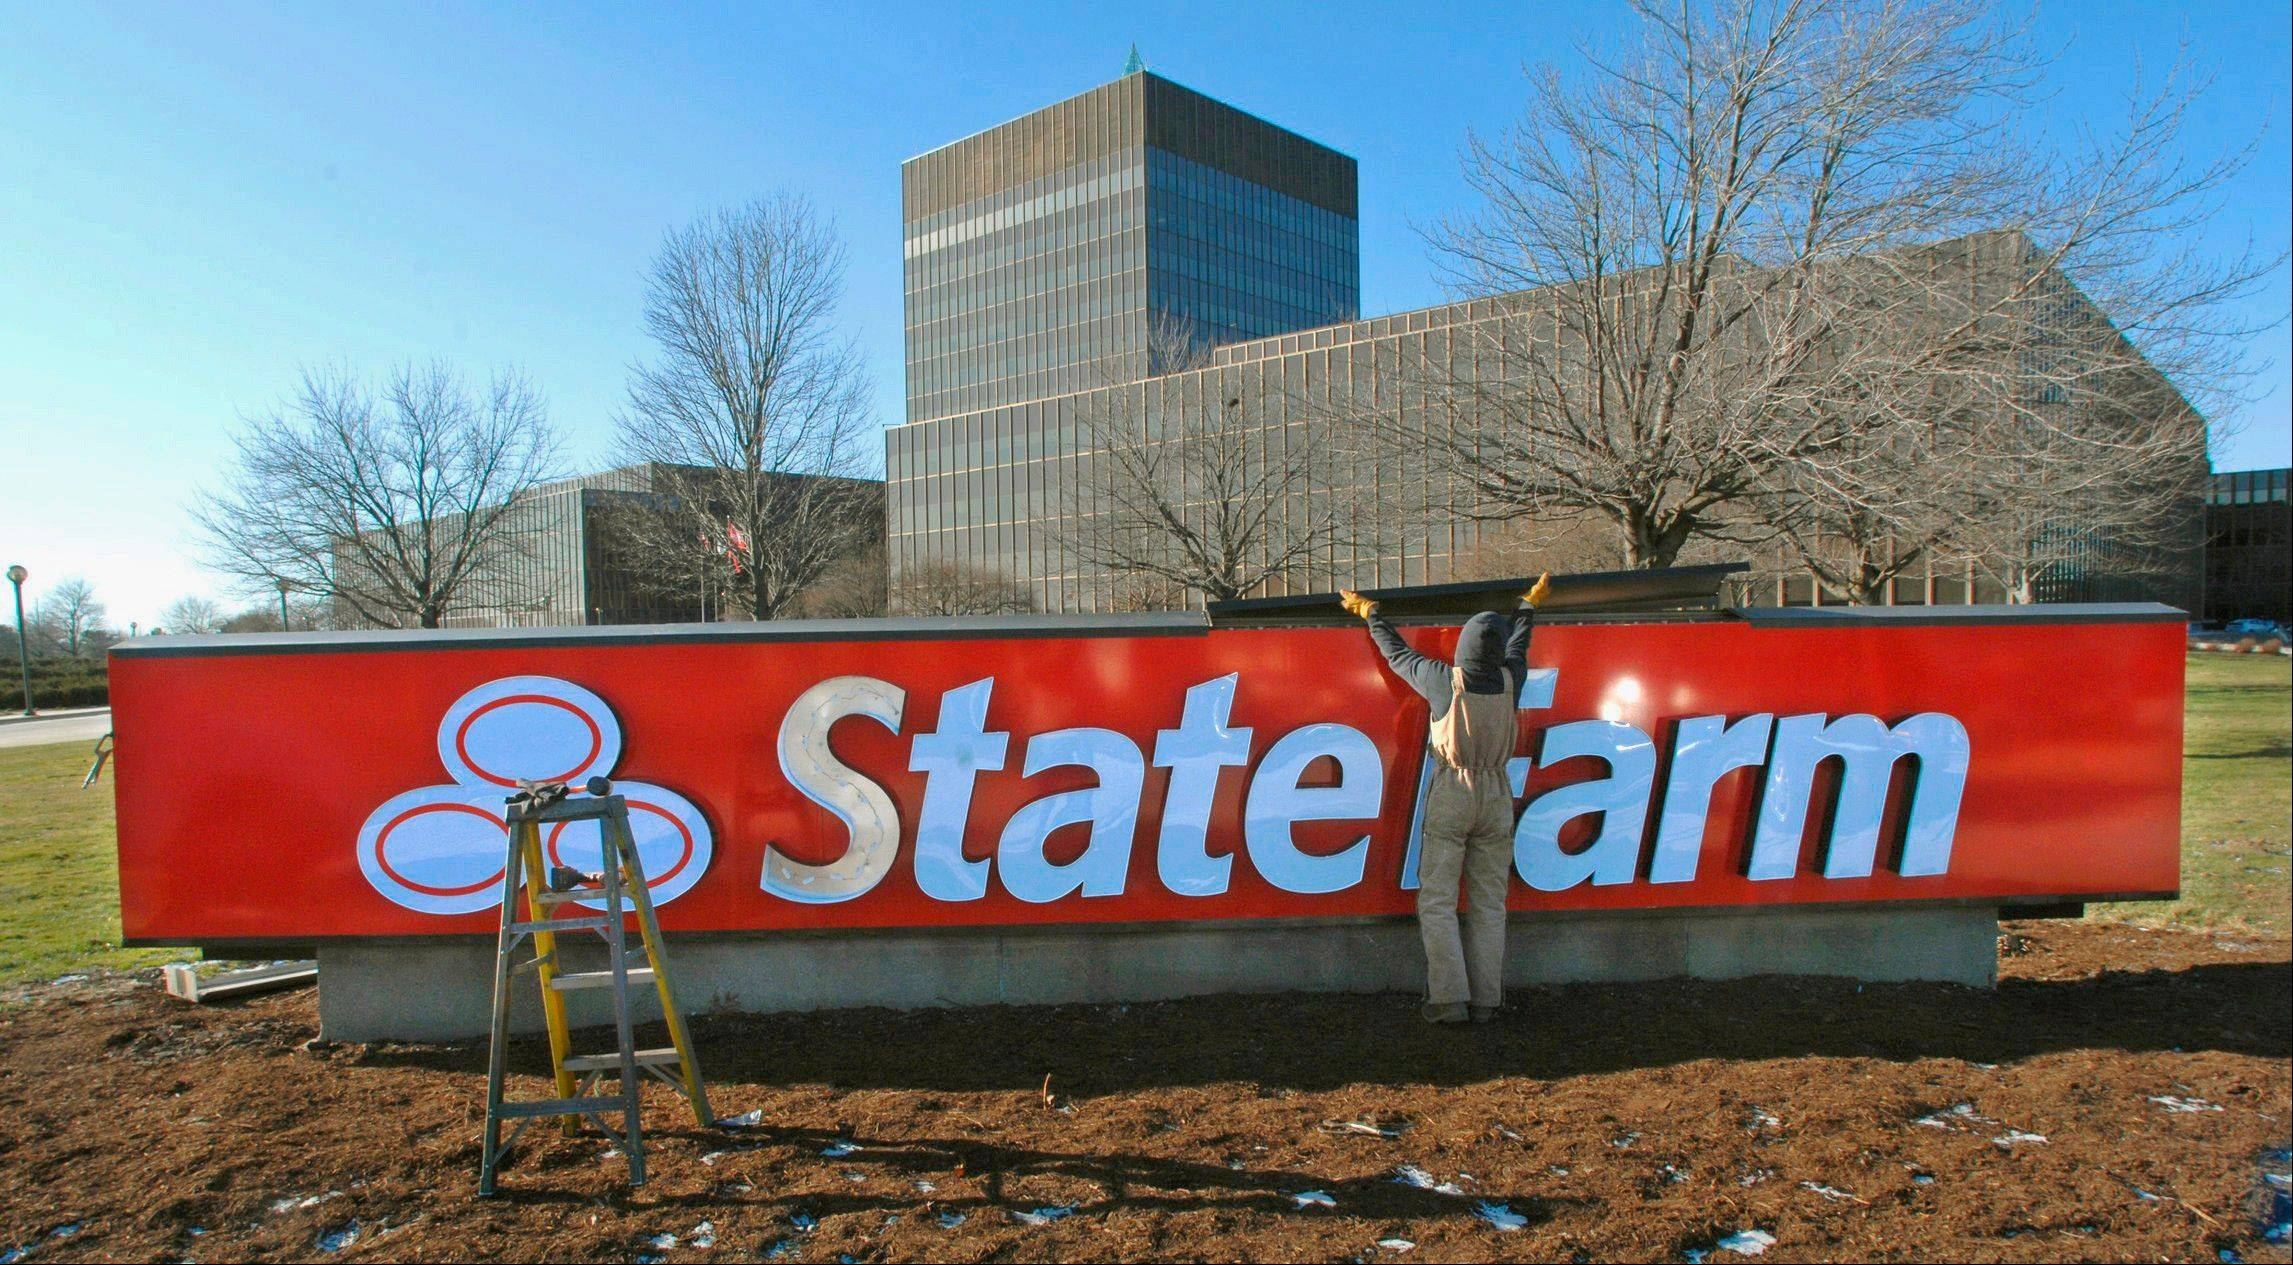 State Farm's plans to add significant office space in Dallas, Atlanta and Phoenix have made some state leaders curious about the company's intentions but a spokeswoman for the insurance firm said it has no plans to leave its Bloomington headquarters, pictured here.